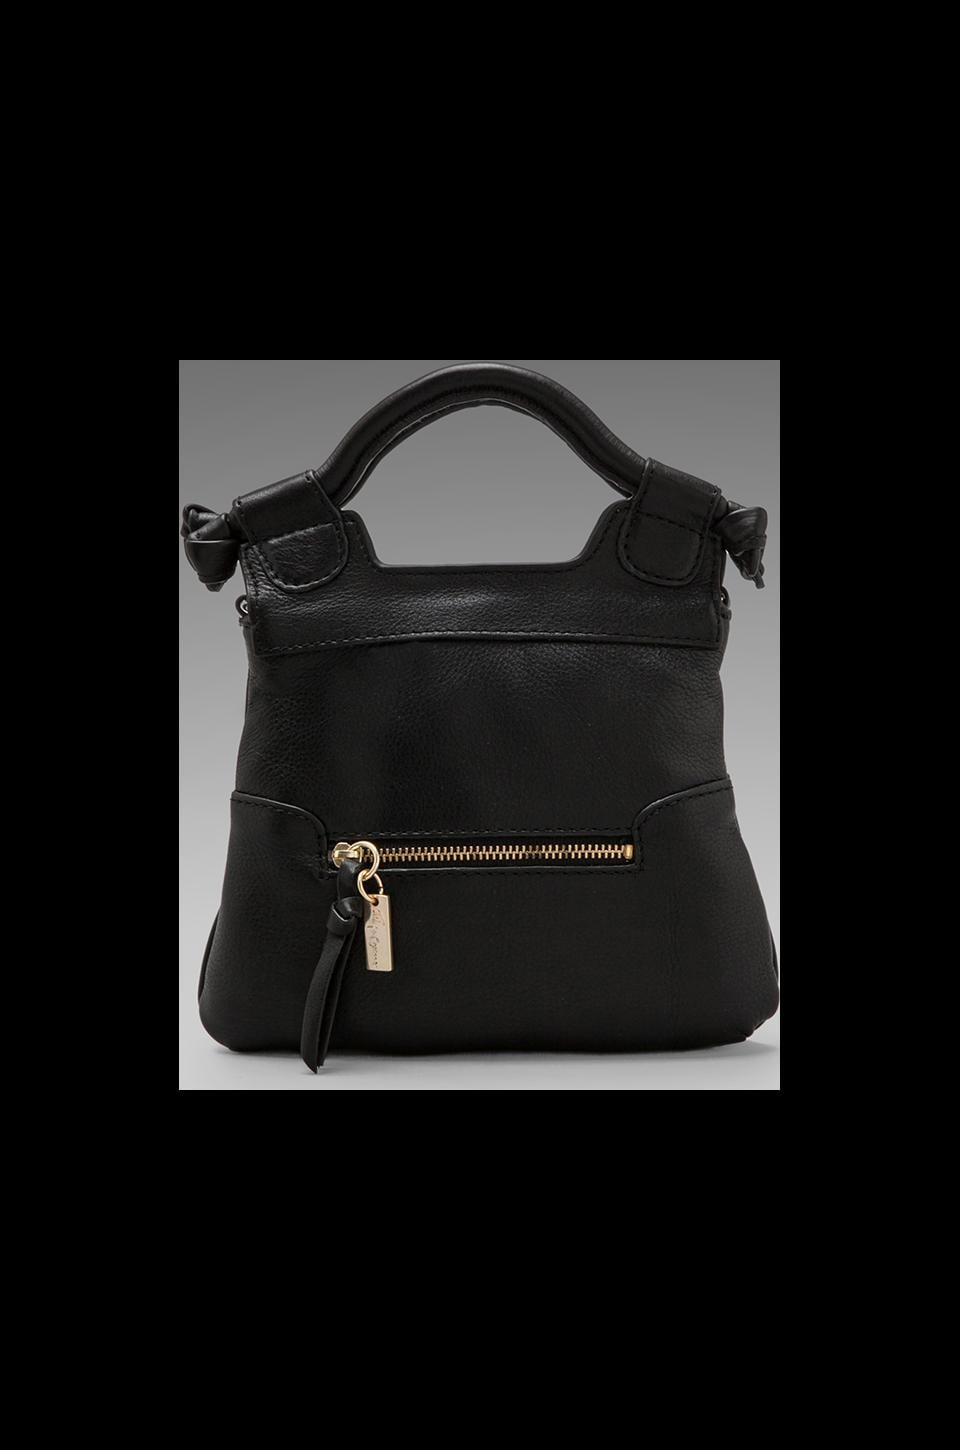 Foley + Corinna Tiny City Bag in Black